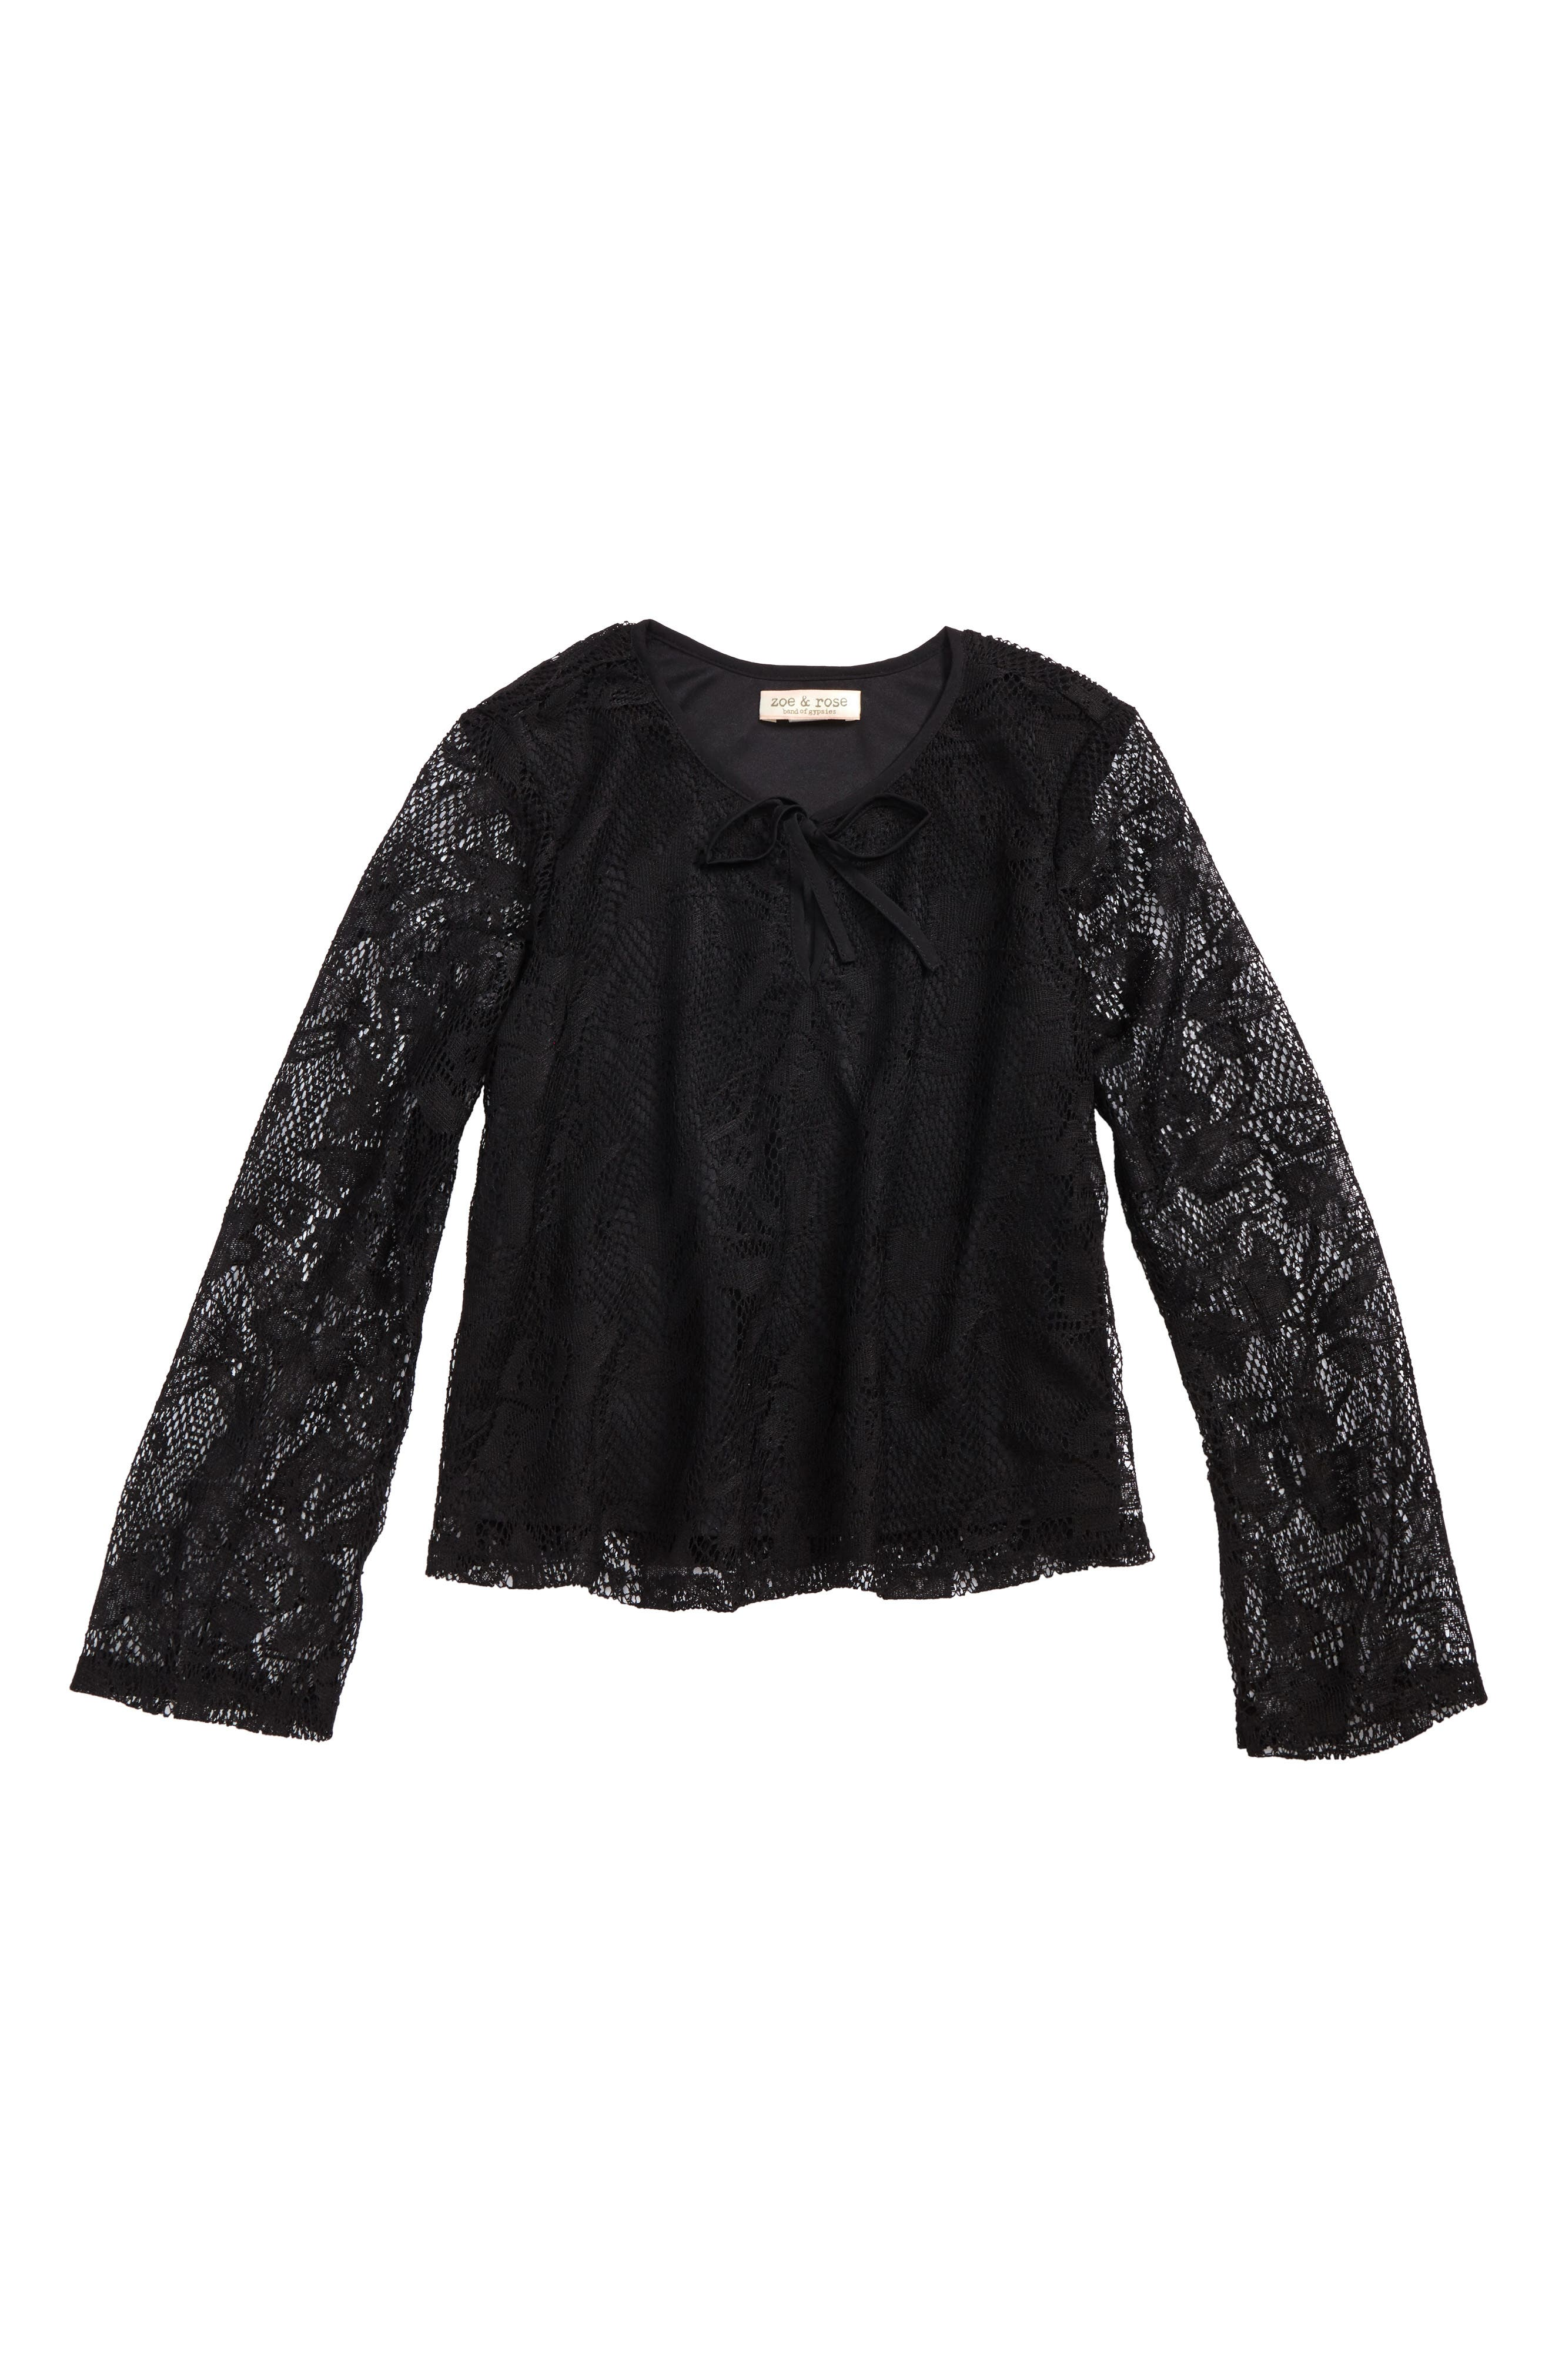 Zoe & Rose Lace Flare Sleeve Blouse,                         Main,                         color, 001